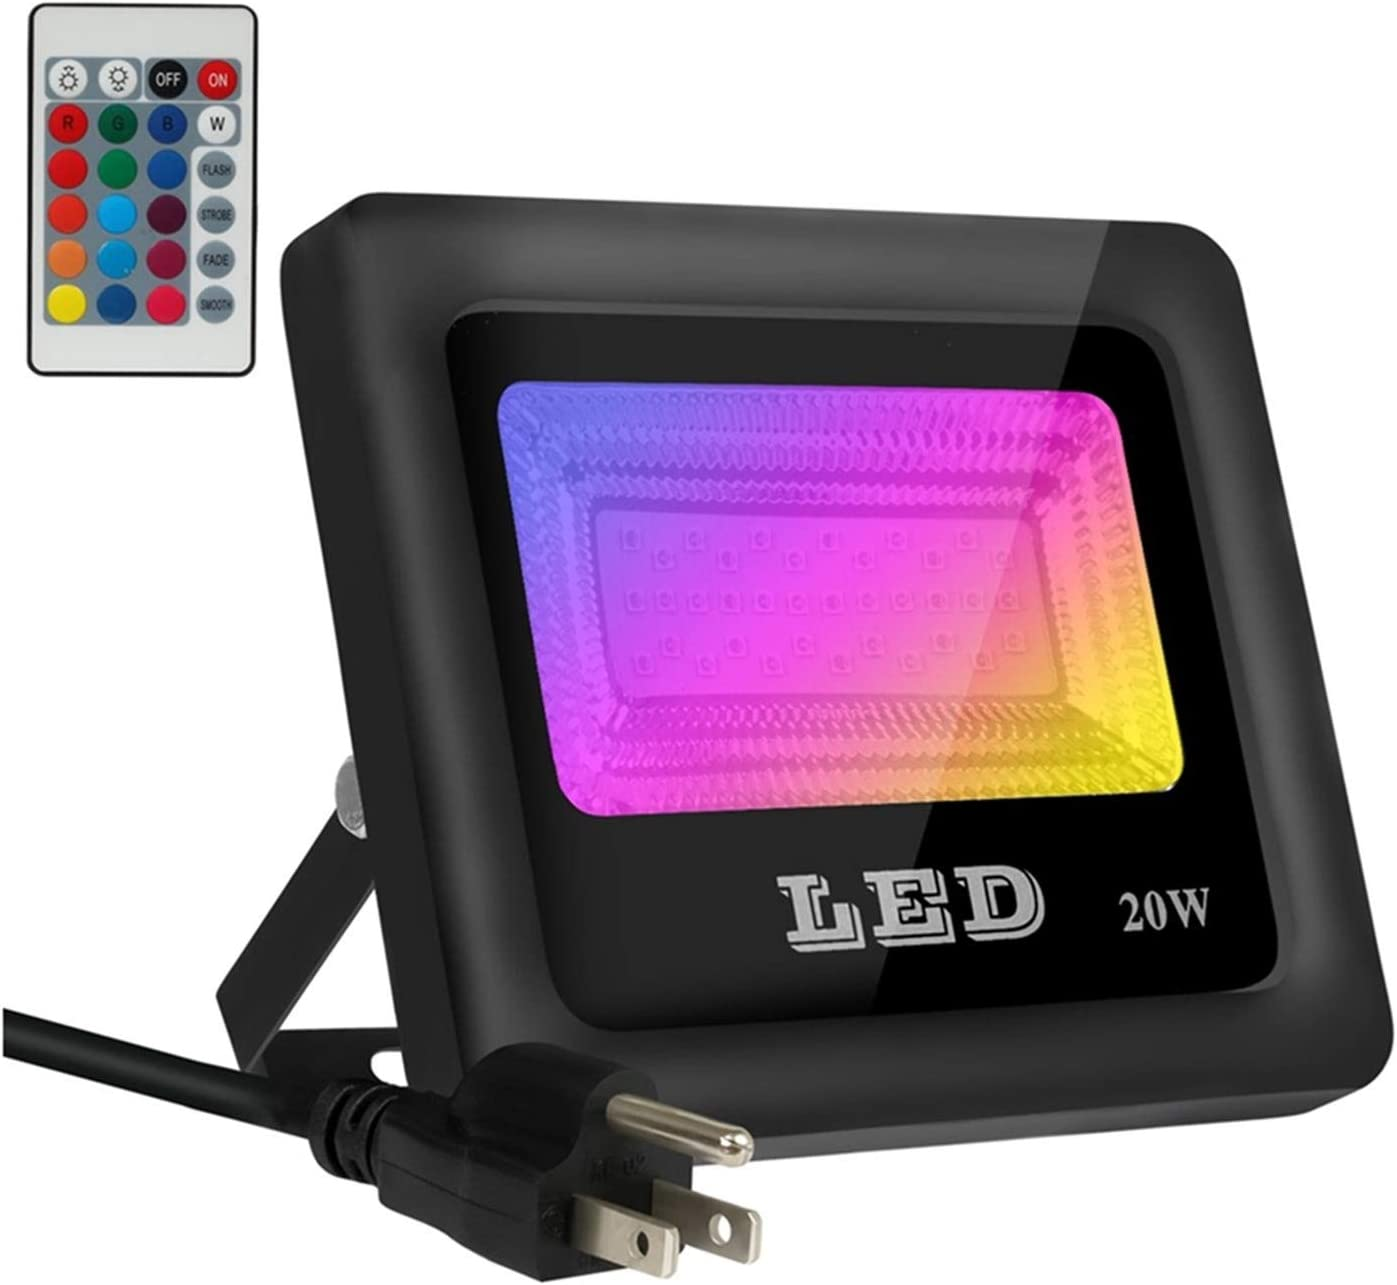 Telaso 20W RGB LED Flood Light, IP66 Waterproof, 16 Colors Changing 4 Lighting Modes with Remote Control, US 3-Plug in Outdoor Security Wall Light for Home Garden, Backyard, Patio, Garage